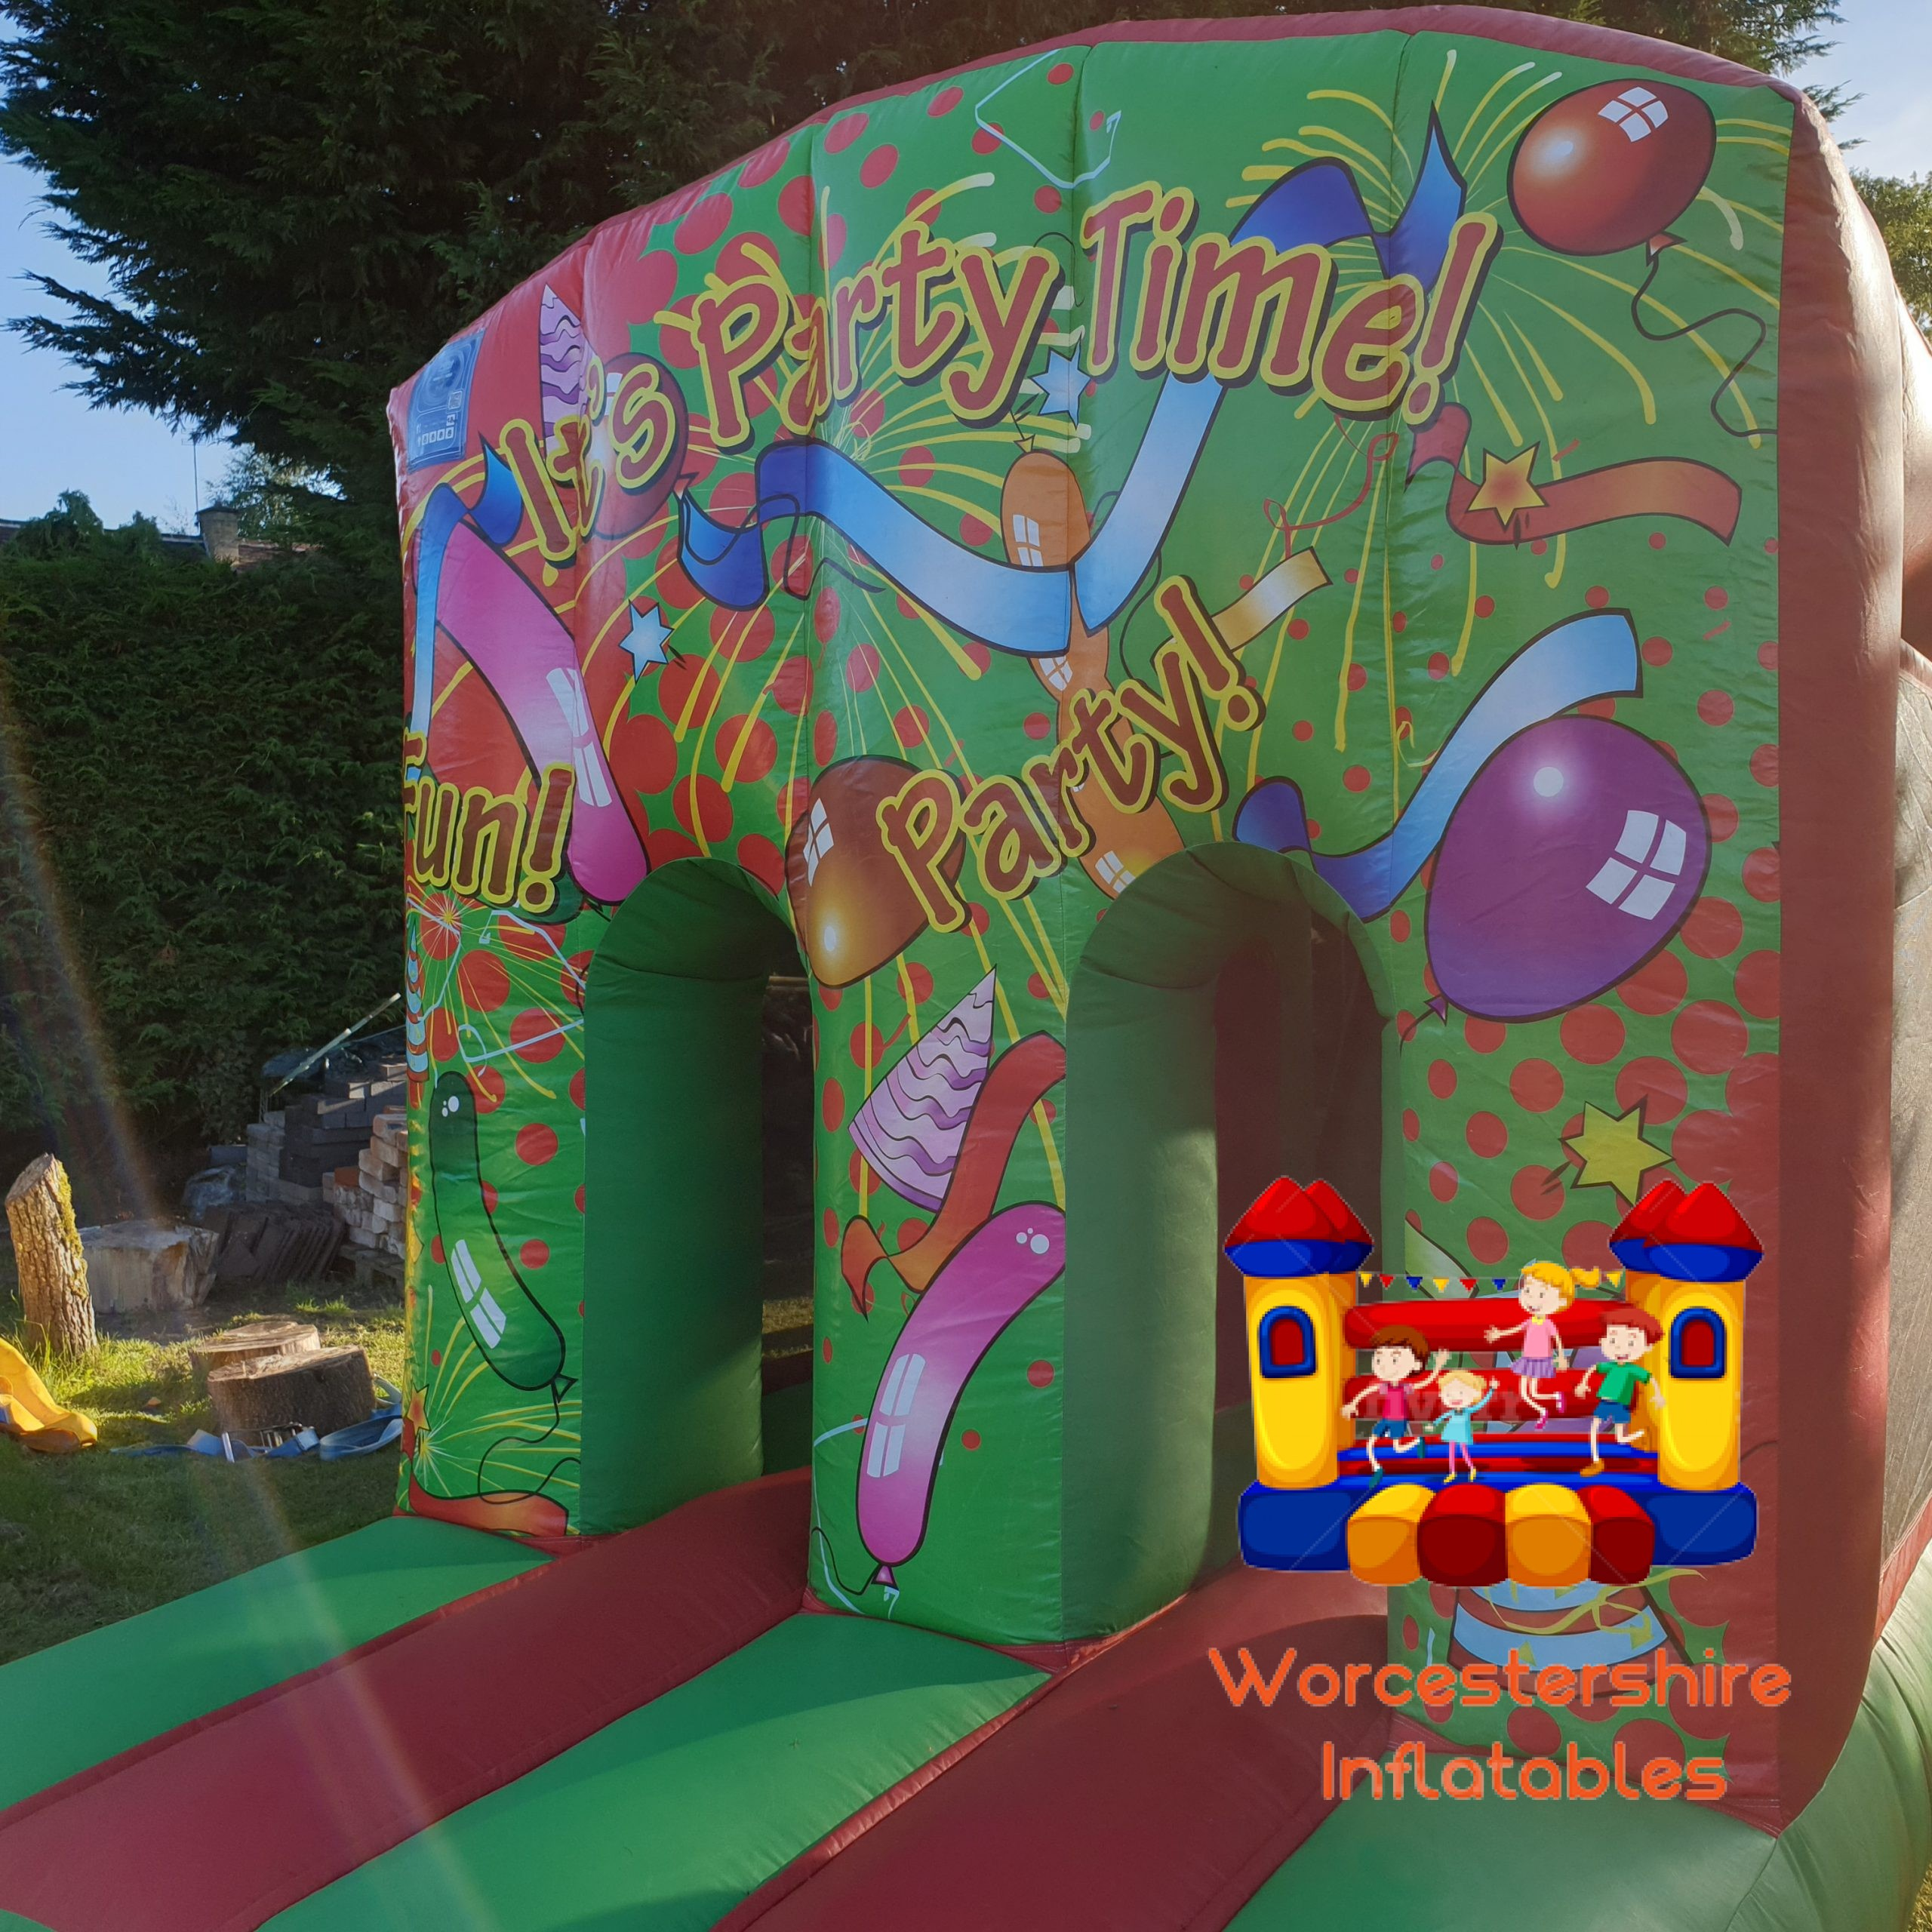 Fun Run Obstacle Course - Worcestershire Inflatables